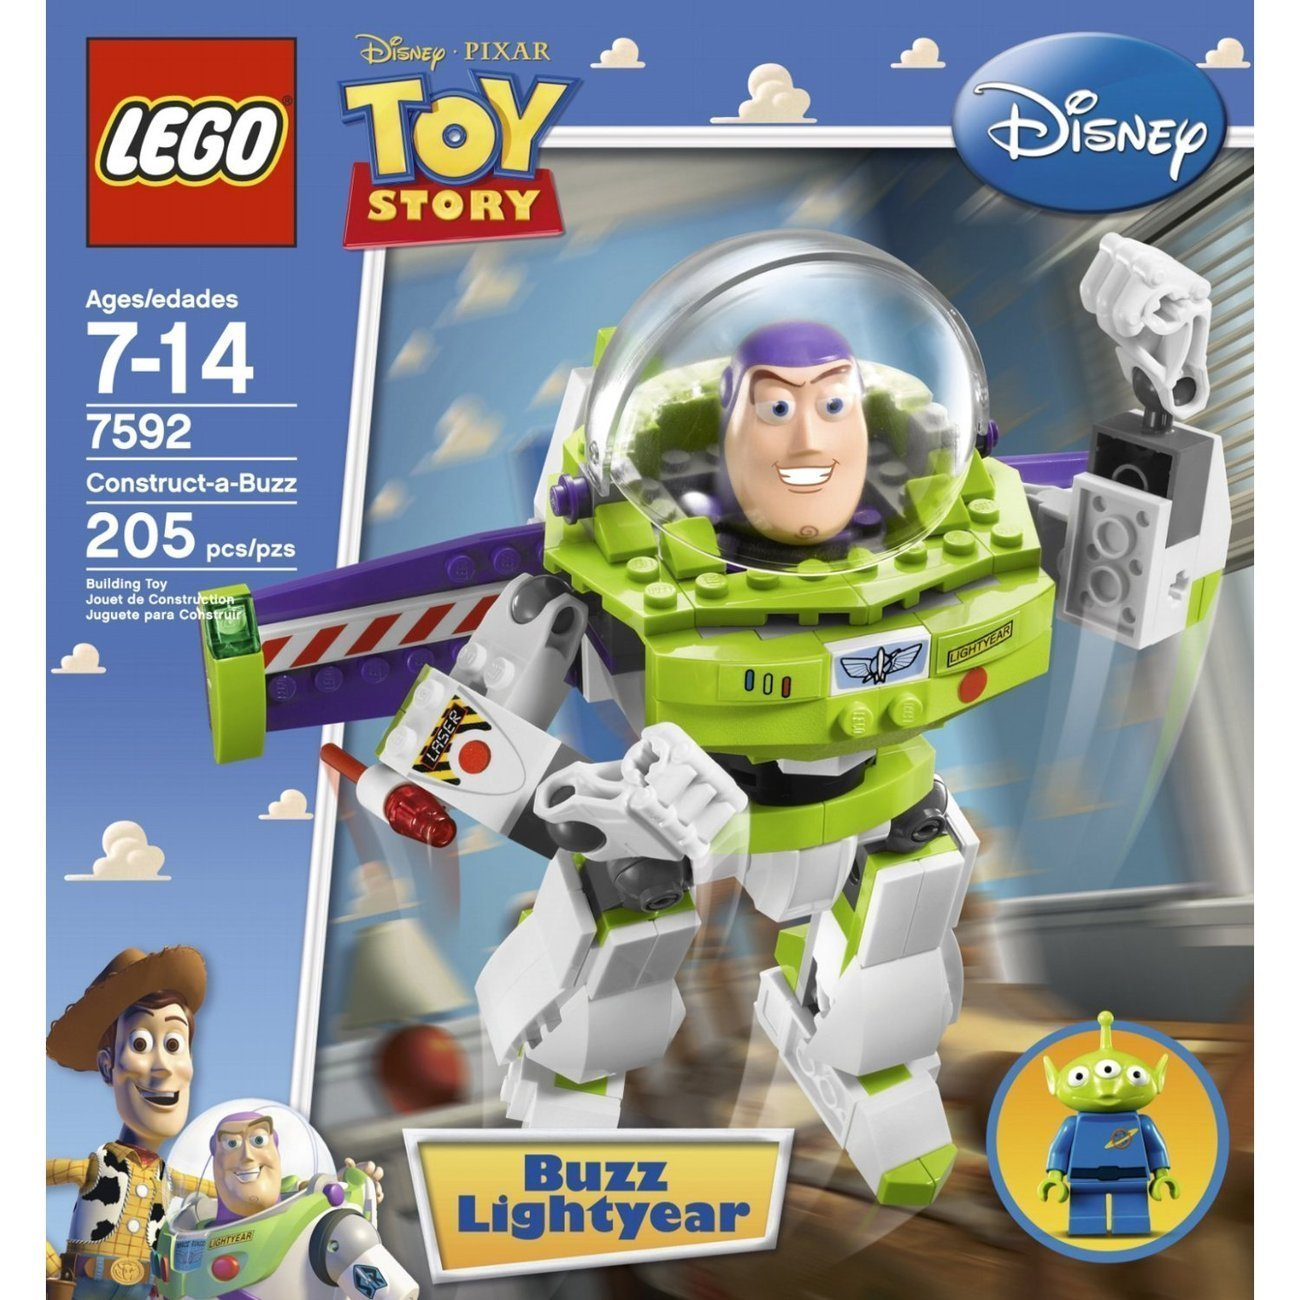 Legobuzzlightyear1